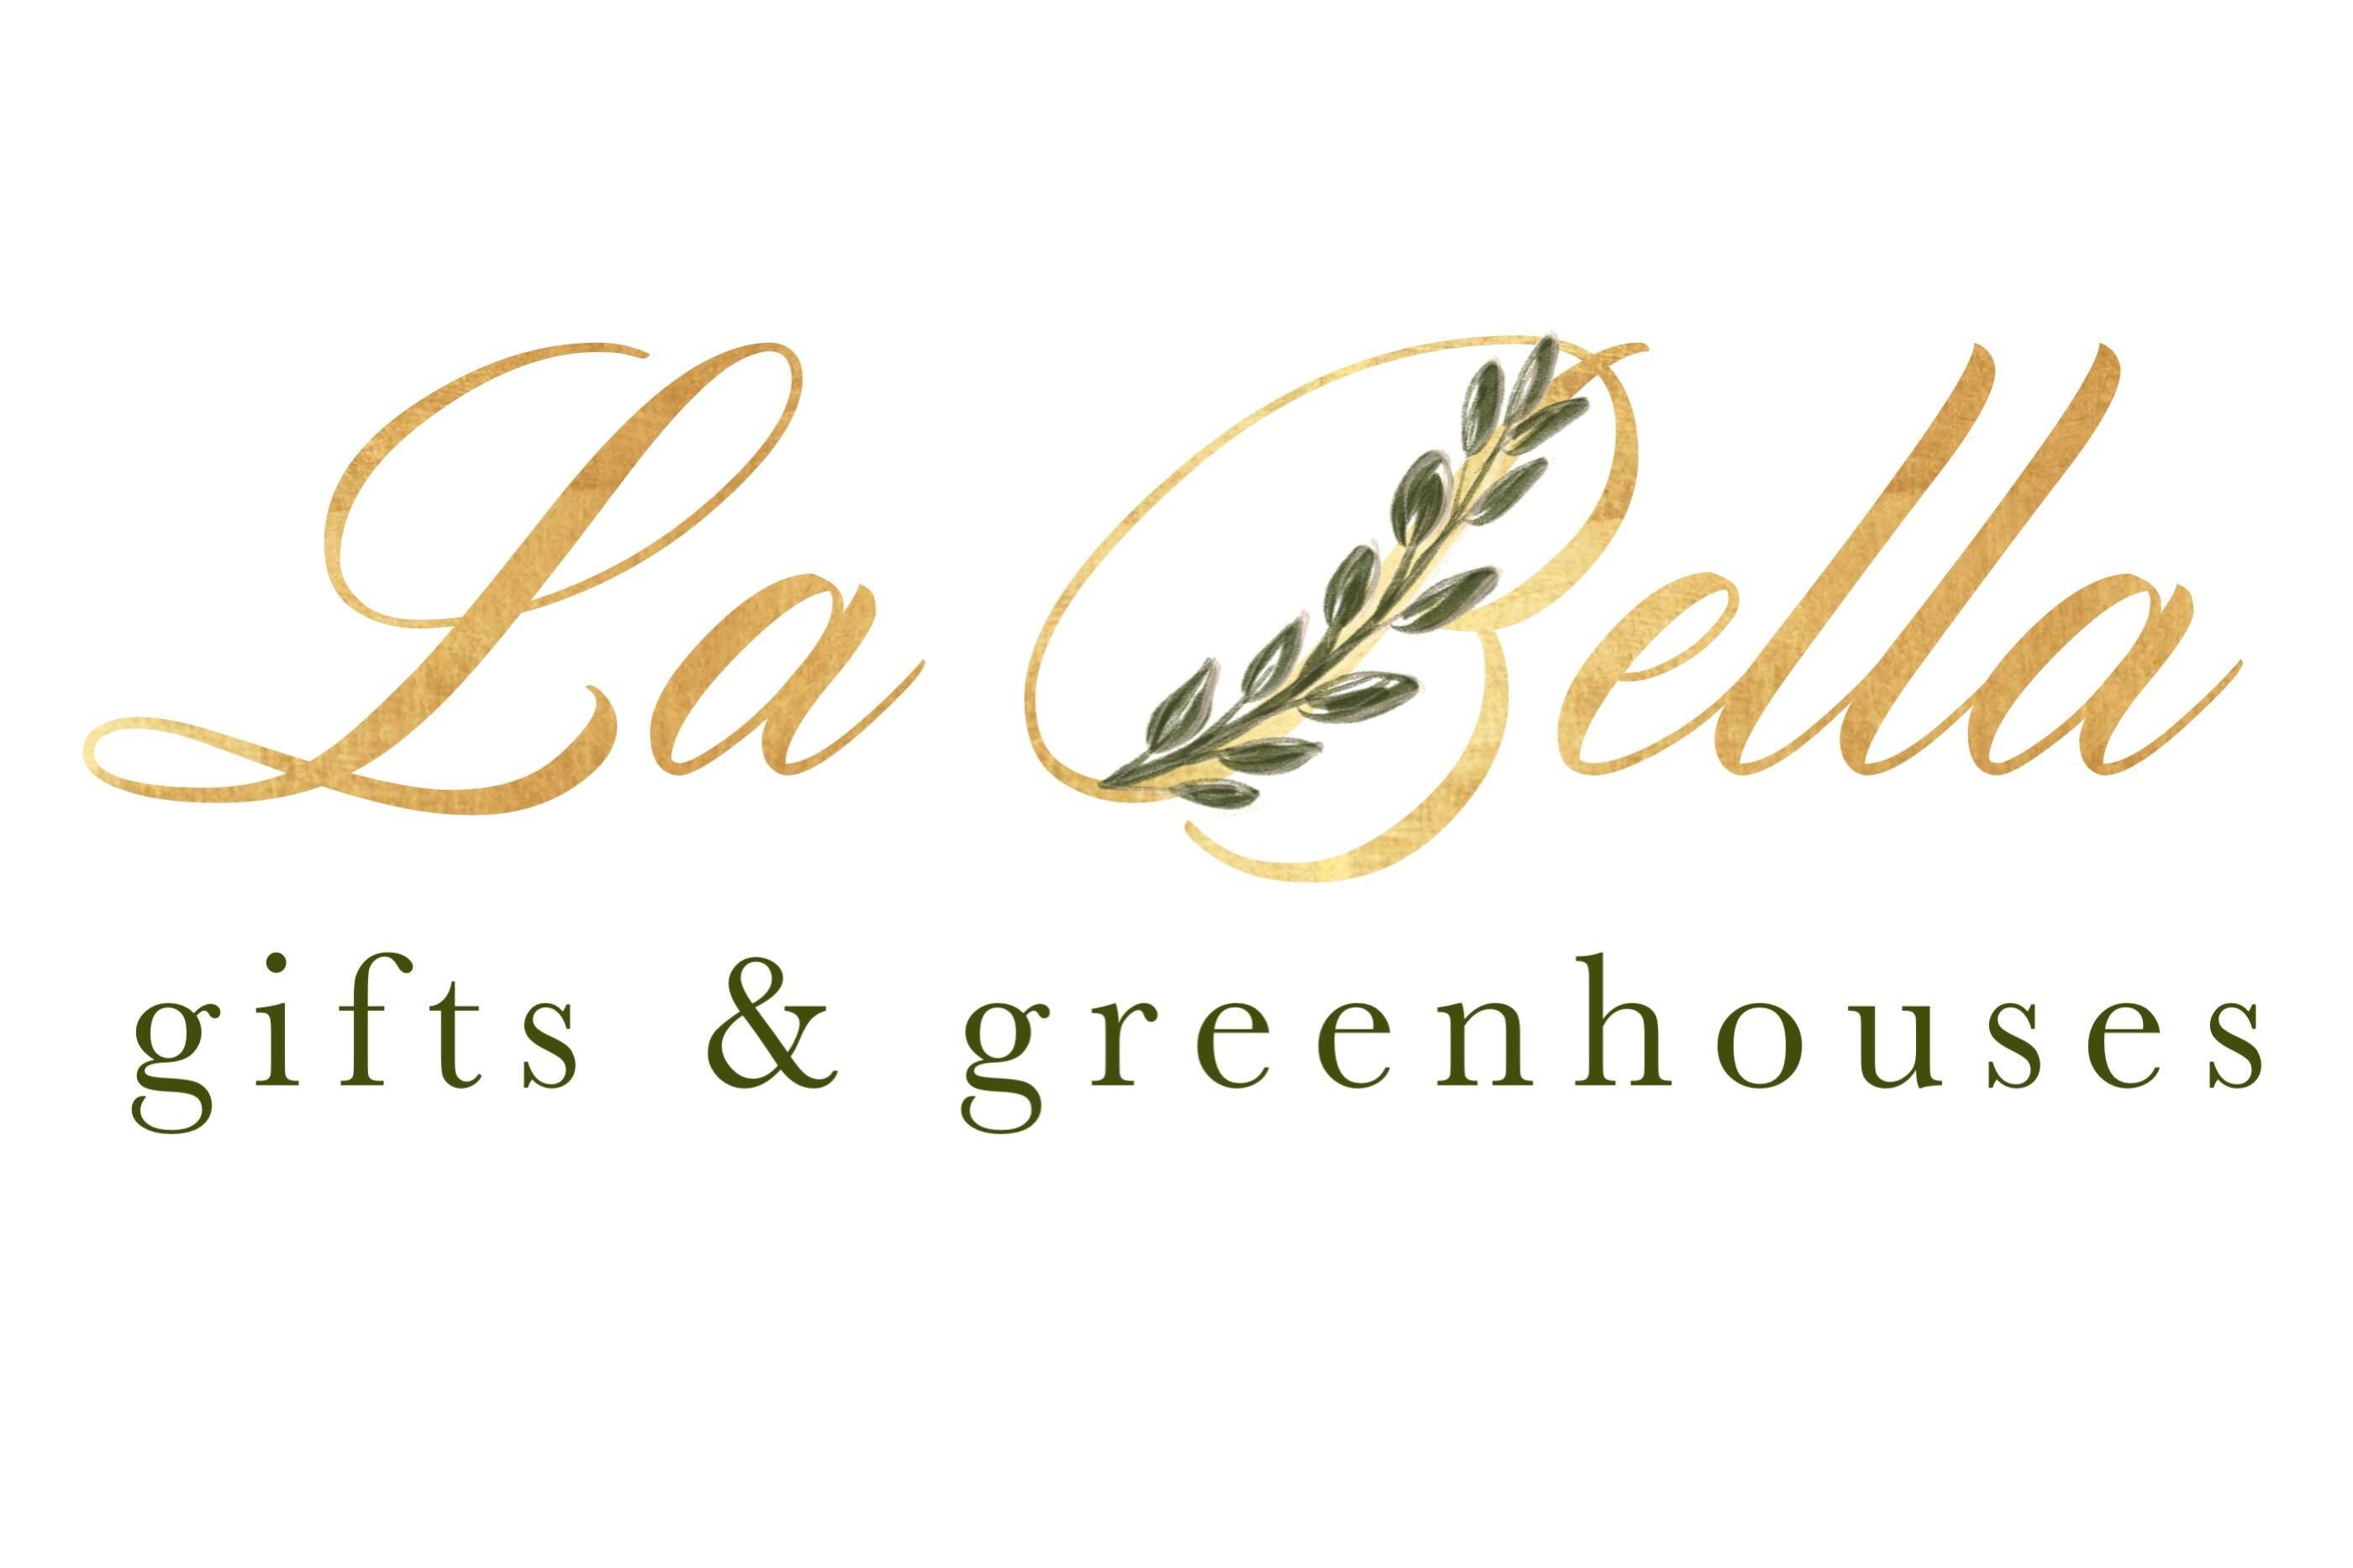 LaBella Gifts & Greenhouses